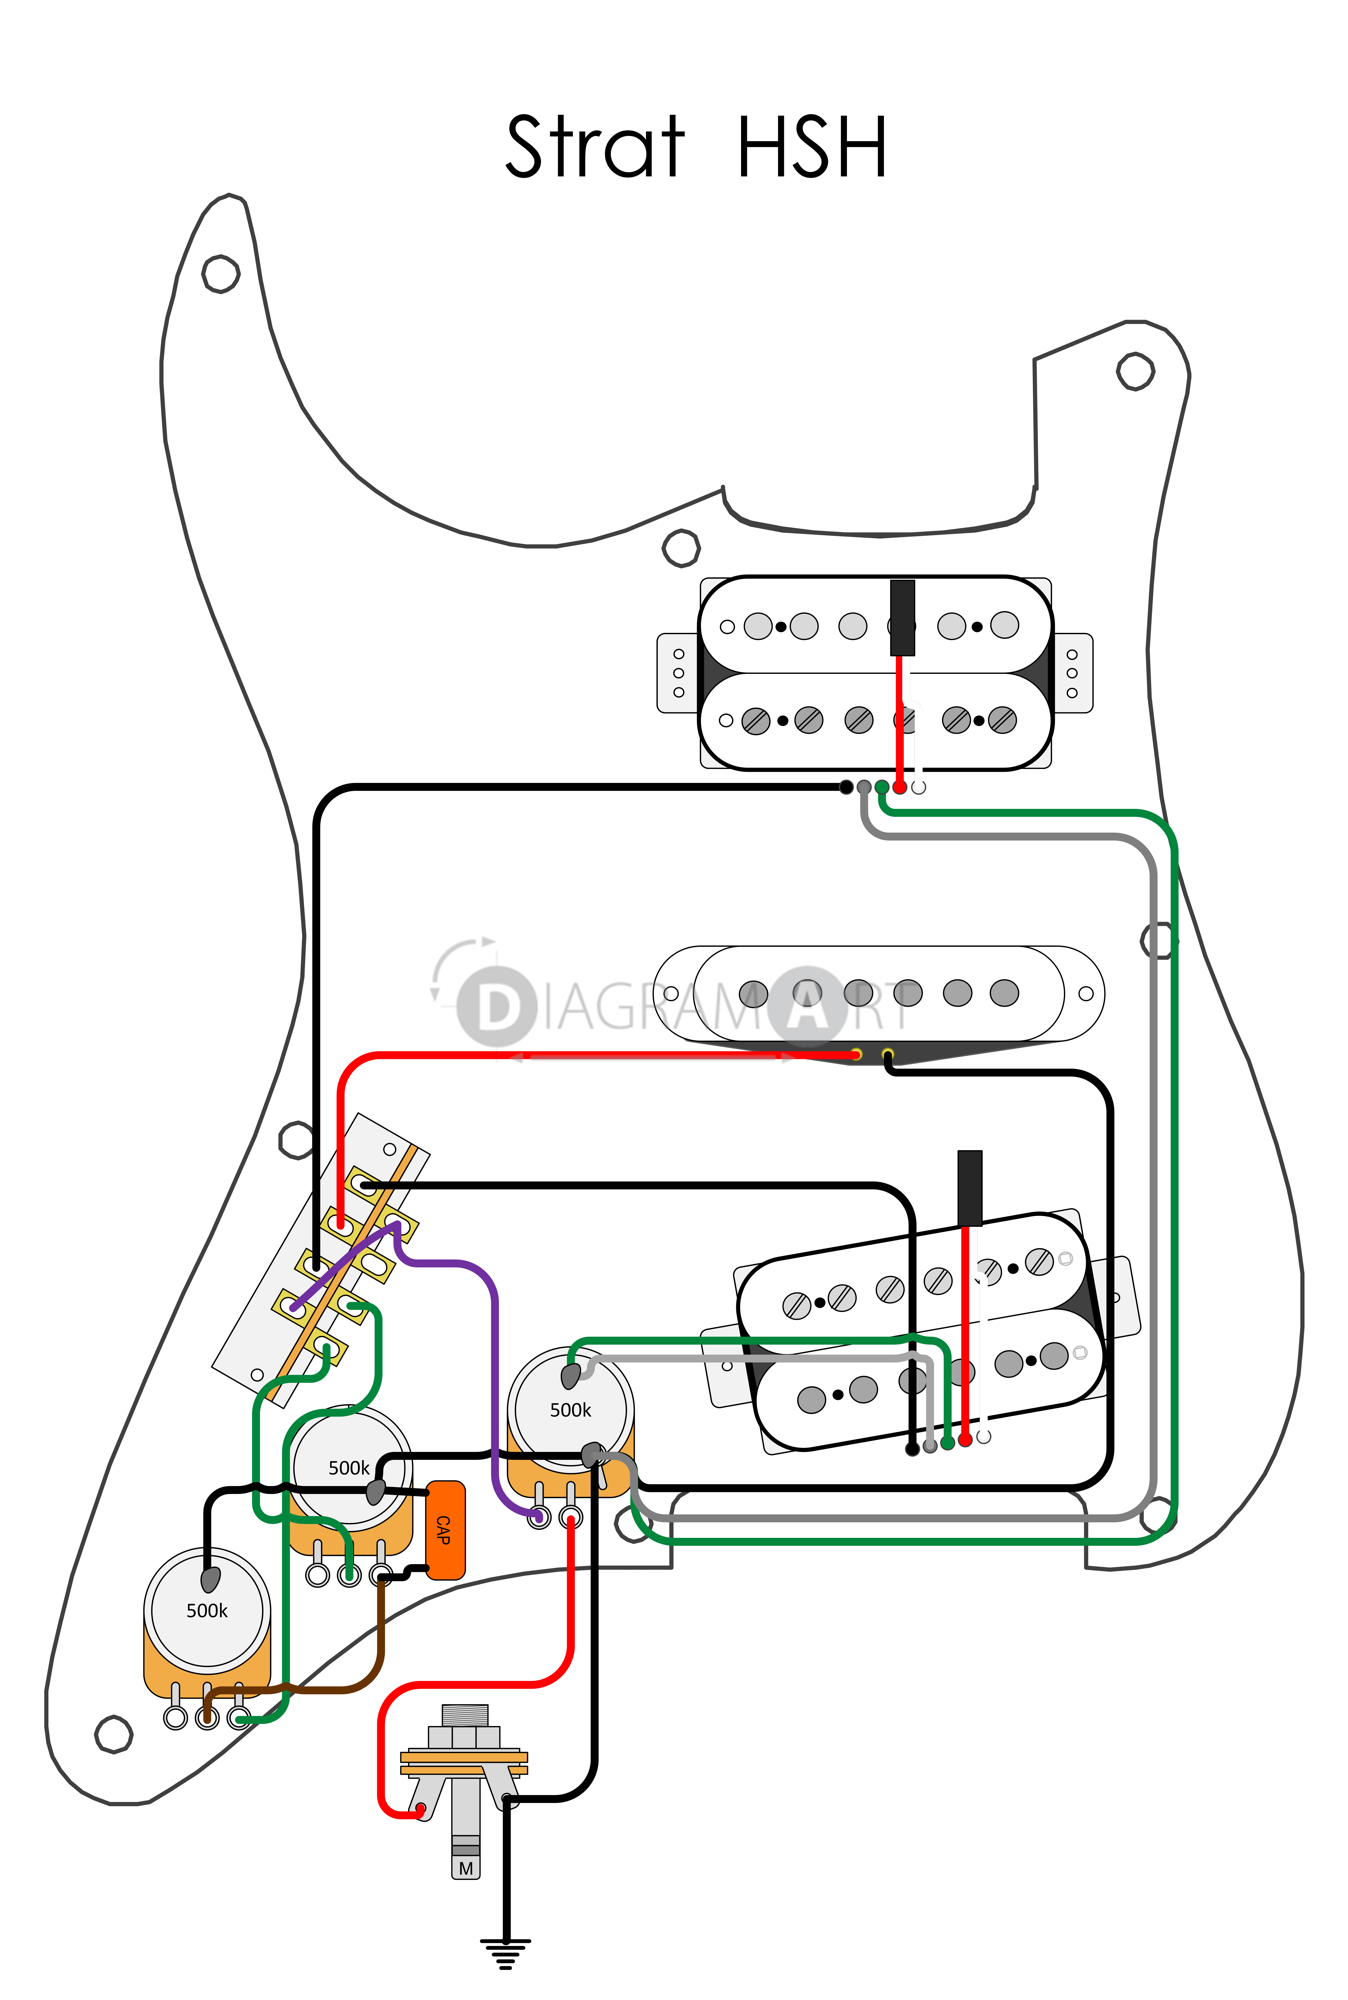 Fender Blacktop Strat Wiring Diagram - Wiring Diagram Schemes on golf cart 36 volt wiring diagram, evh pick up diagram, push pull pot diagram, les paul wiring diagram, gibson les paul diagram, telecaster wiring diagram, epiphone wiring diagram, fender five way switch diagram, american stratocaster wiring diagram, fender squier wiring-diagram, fender jaguar diagram, strat jack diagram, squier stratocaster wiring diagram, stratocaster pickup wiring diagram, gibson lp wiring diagram, mosrite wiring diagram, sm57 wiring diagram, gibson thunderbird wiring diagram, dpdt on-off-on switch diagram, musicman wiring diagram,